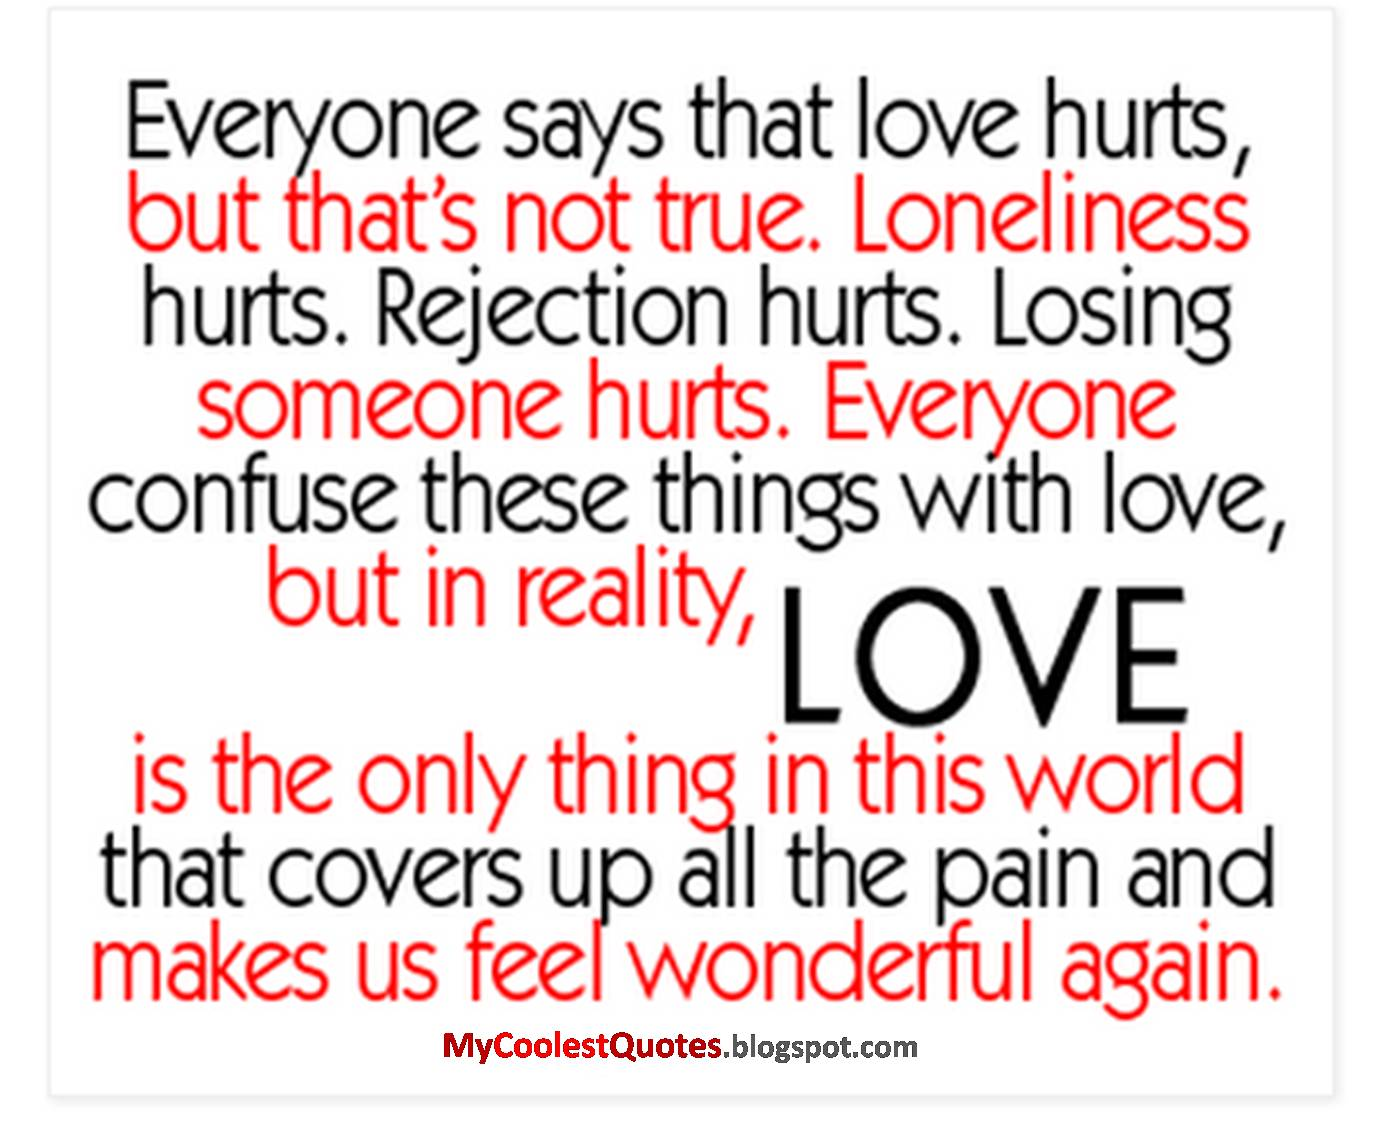 Free Download Pictures Gallery Of Love Hurt Quotes Love Hurts Love Quotes Typos 1377x1127 For Your Desktop Mobile Tablet Explore 72 Love Hurts Quotes Wallpapers Love Quotes Wallpaper Cute